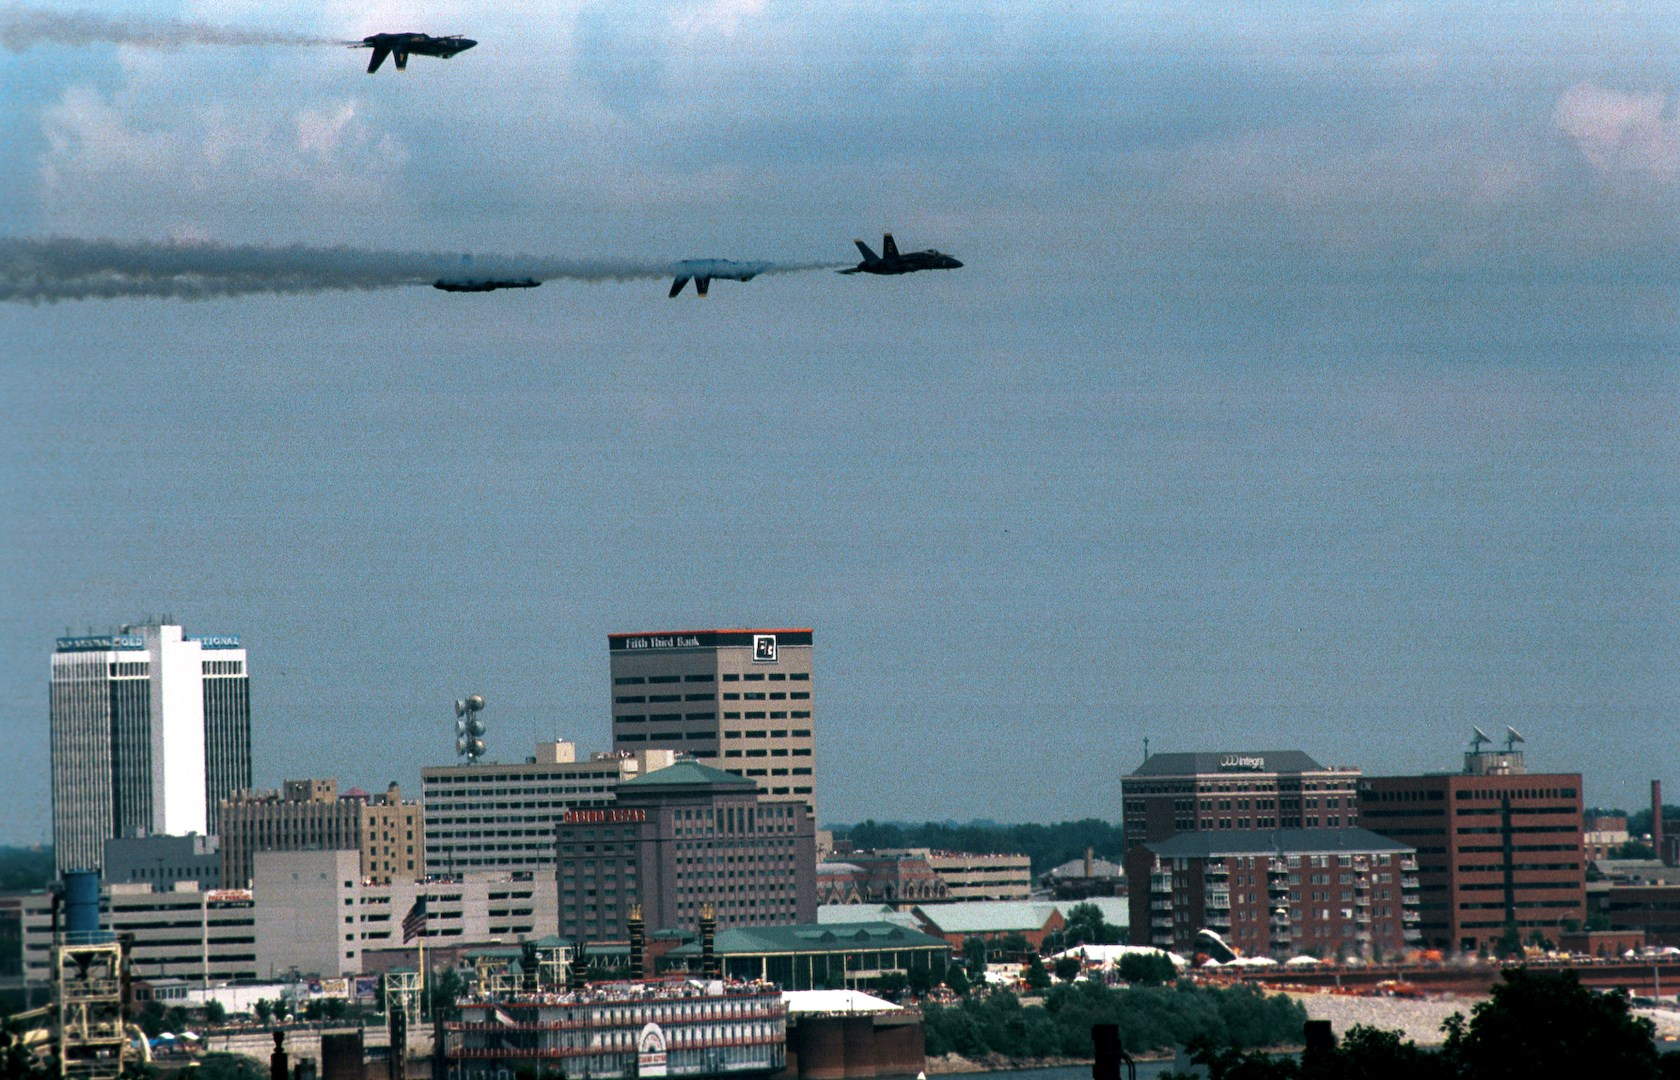 Blue Angels fly manuevers over Evansville